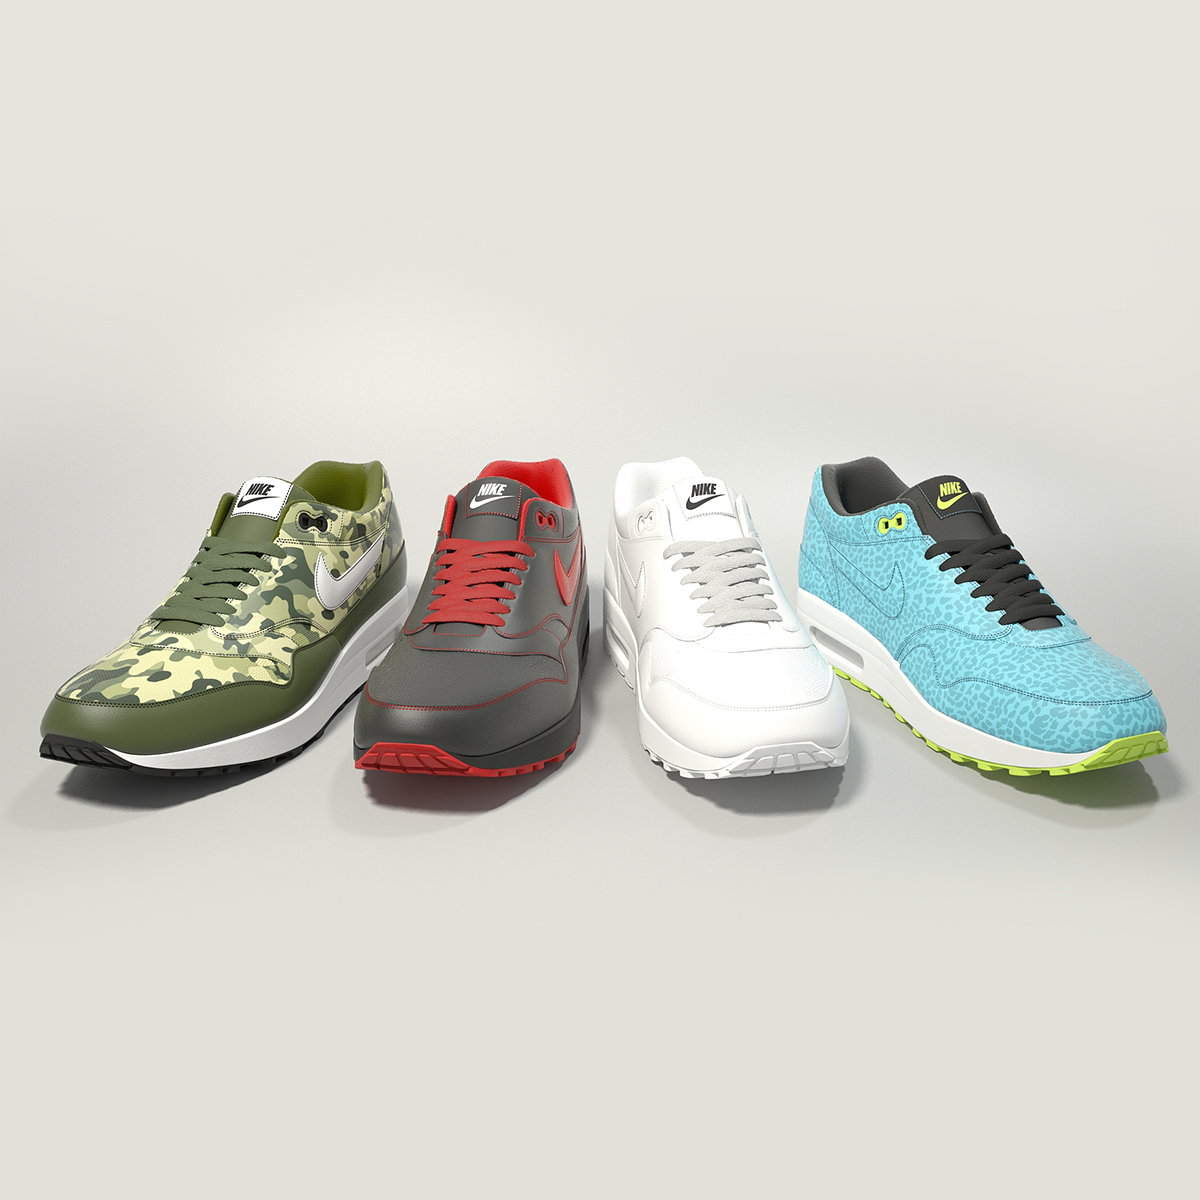 nike air max 1 3d model max obj fbx jpeg 265397